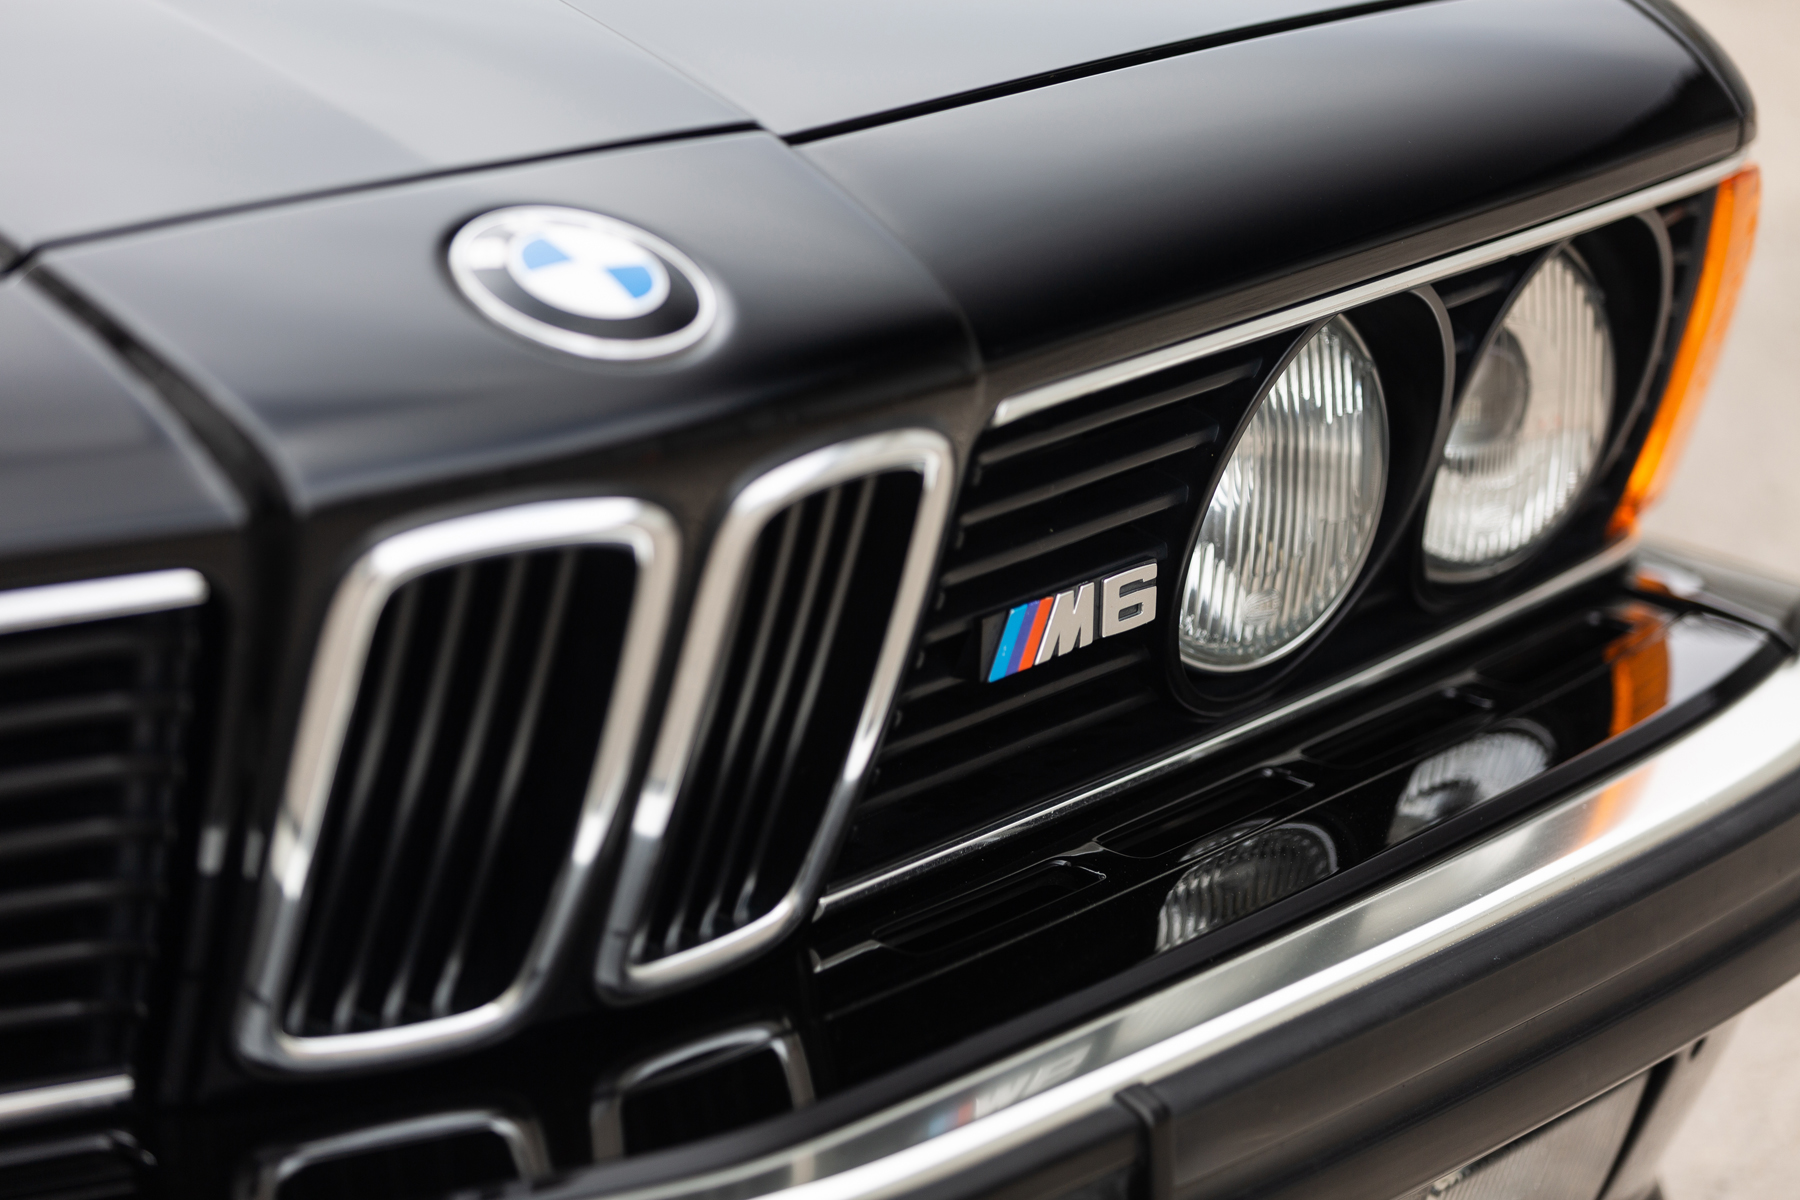 """The front area is characterized by the 4 circular lights inserted into the grille, by the double kidney grille and by the forward slanting front called """"shark nose"""""""